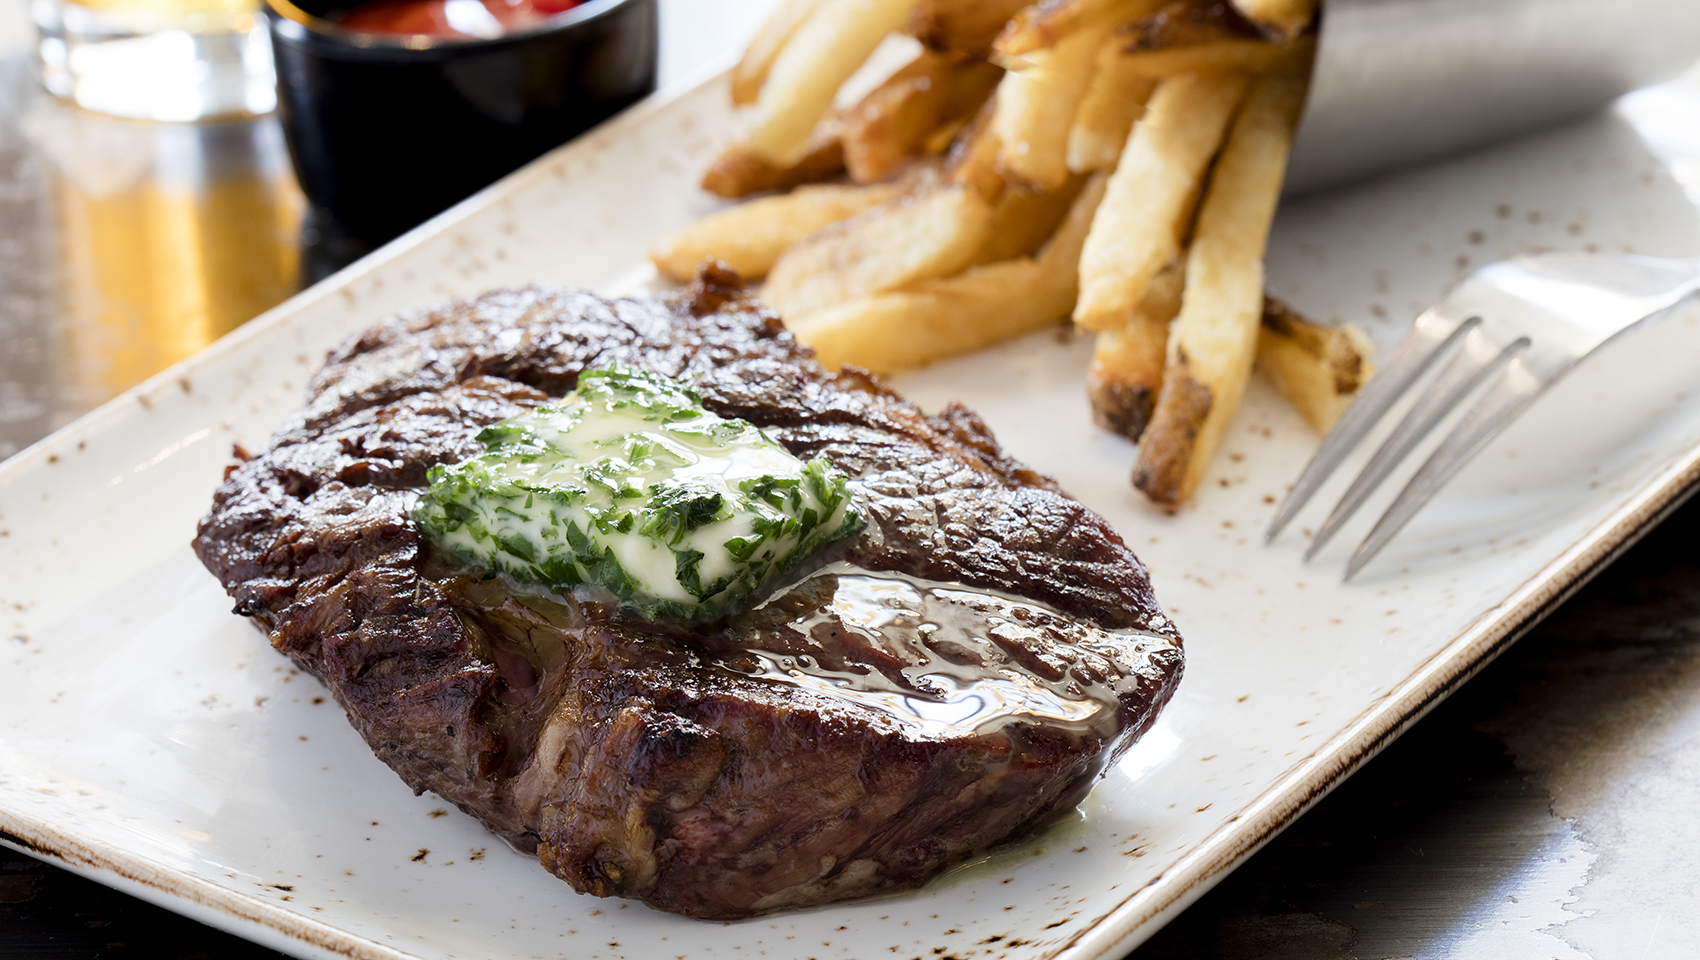 Steak Frites and fries at B & O Brasserie